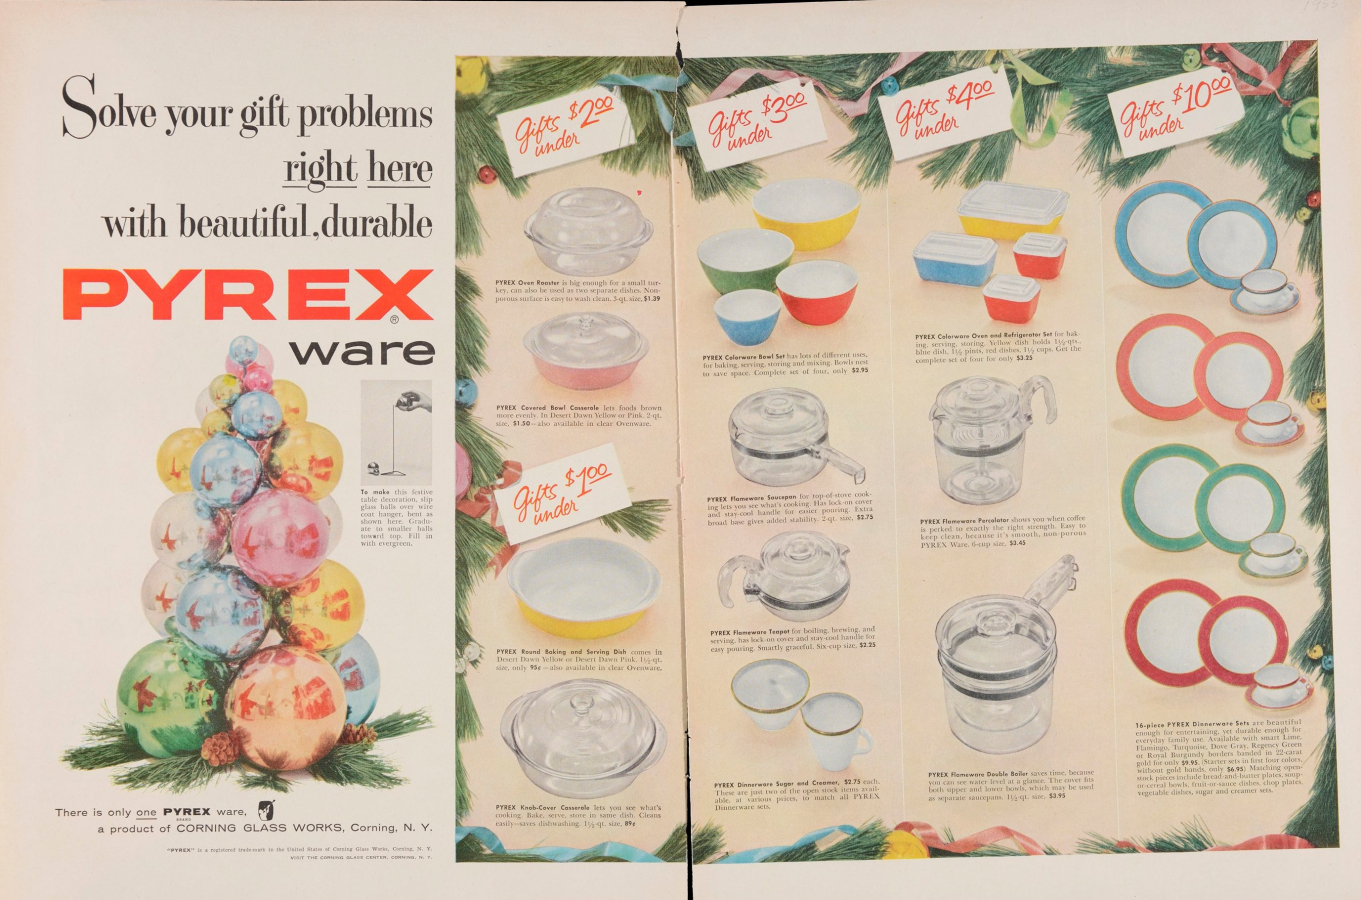 Solve your gift problems right here with beautiful, durable Pyrex ware